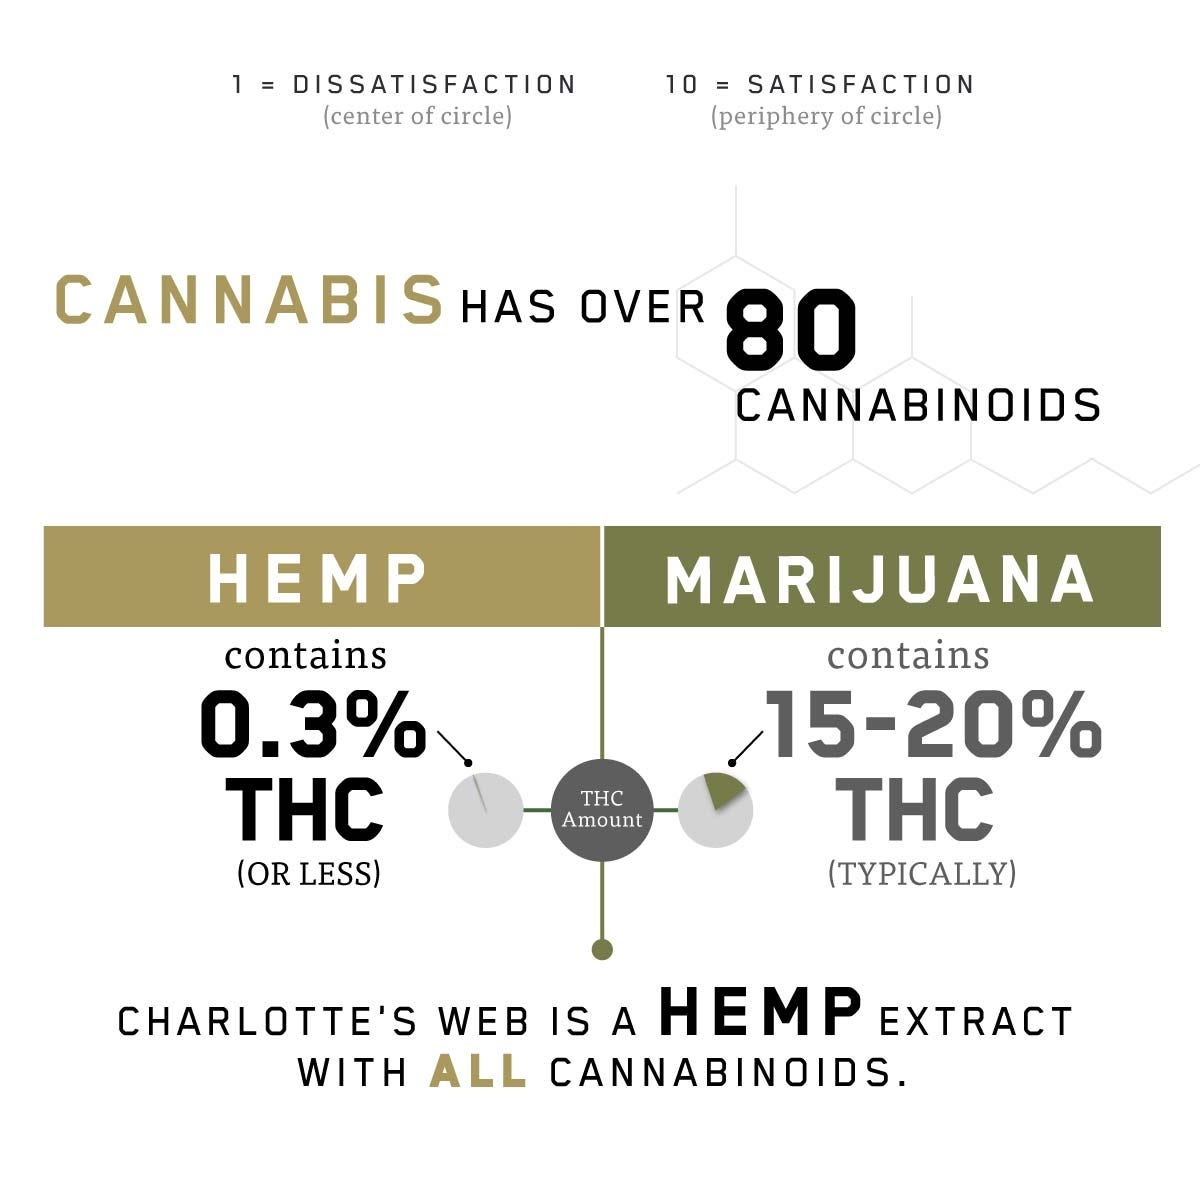 What is the difference between hemp and mariijuana?